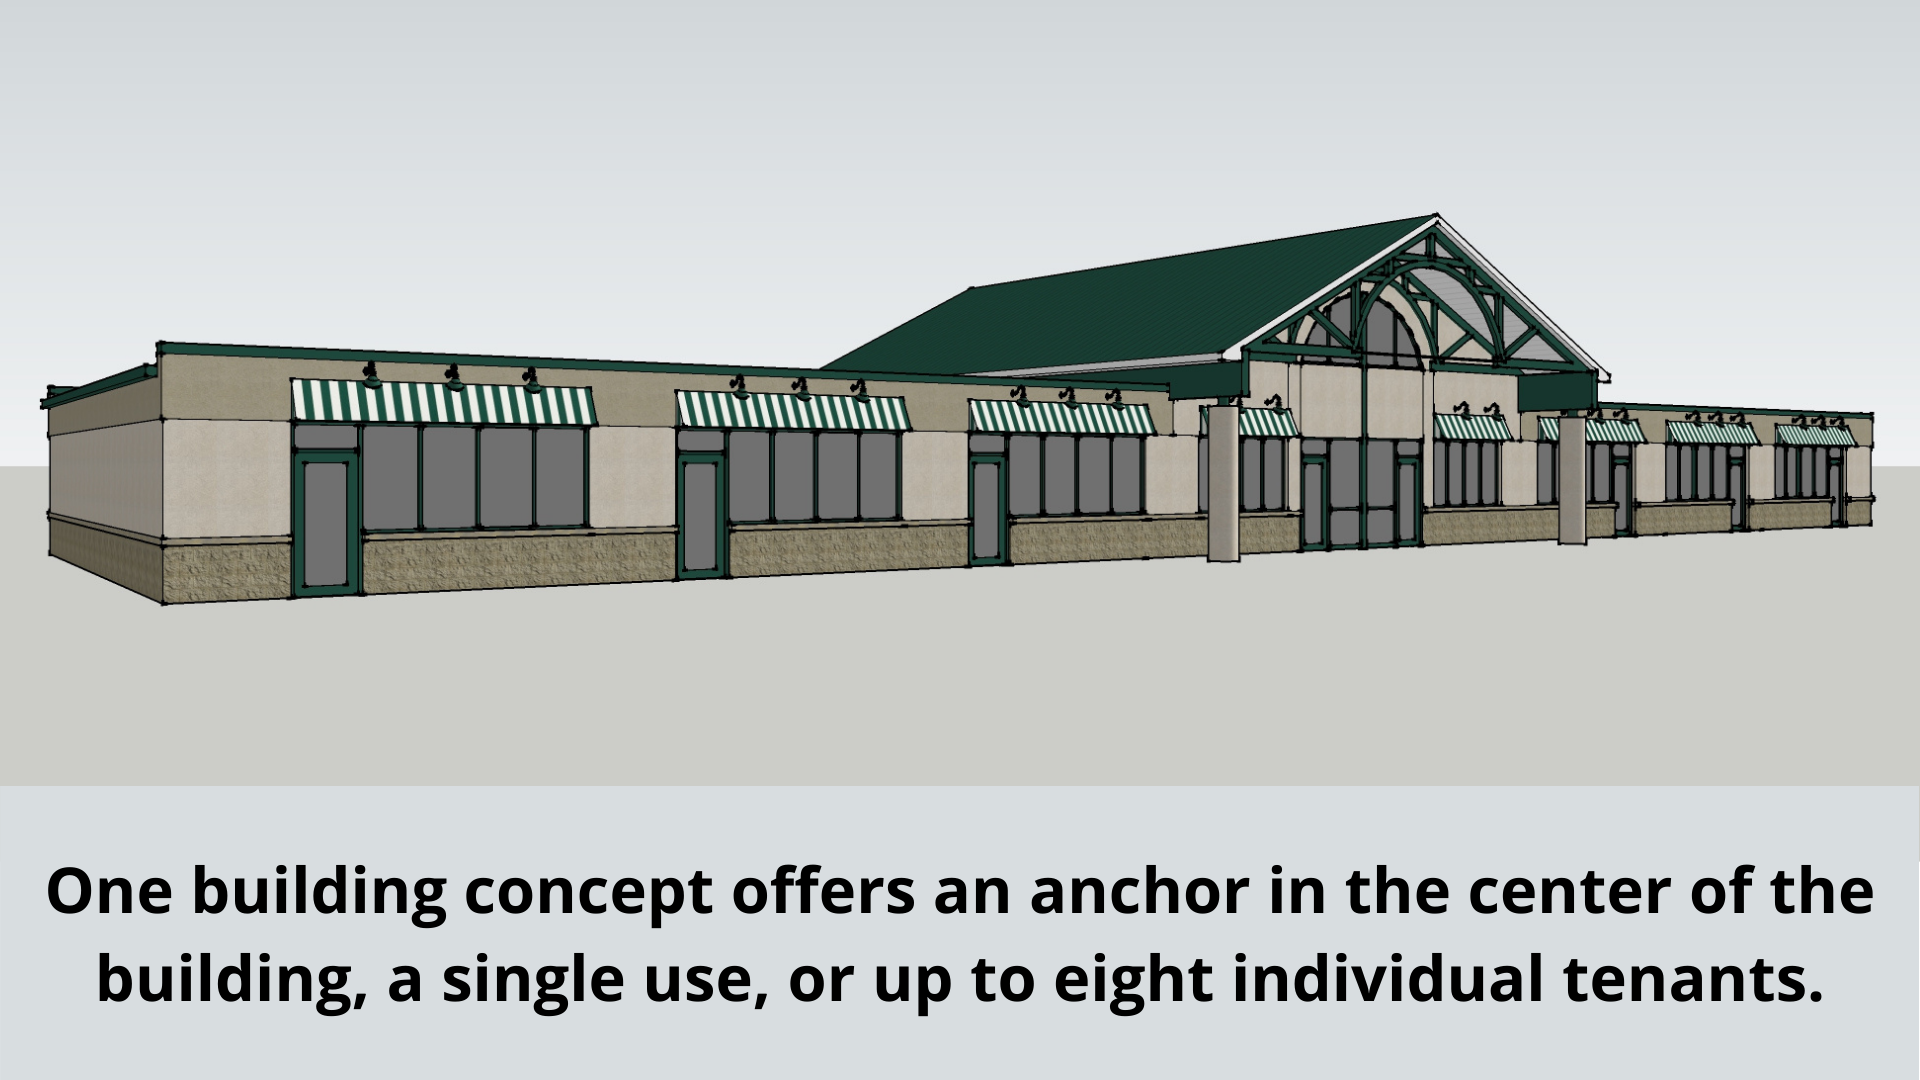 This building concept can offer an anchor store or office in the middle, a single use location, or up to eight individual tenants